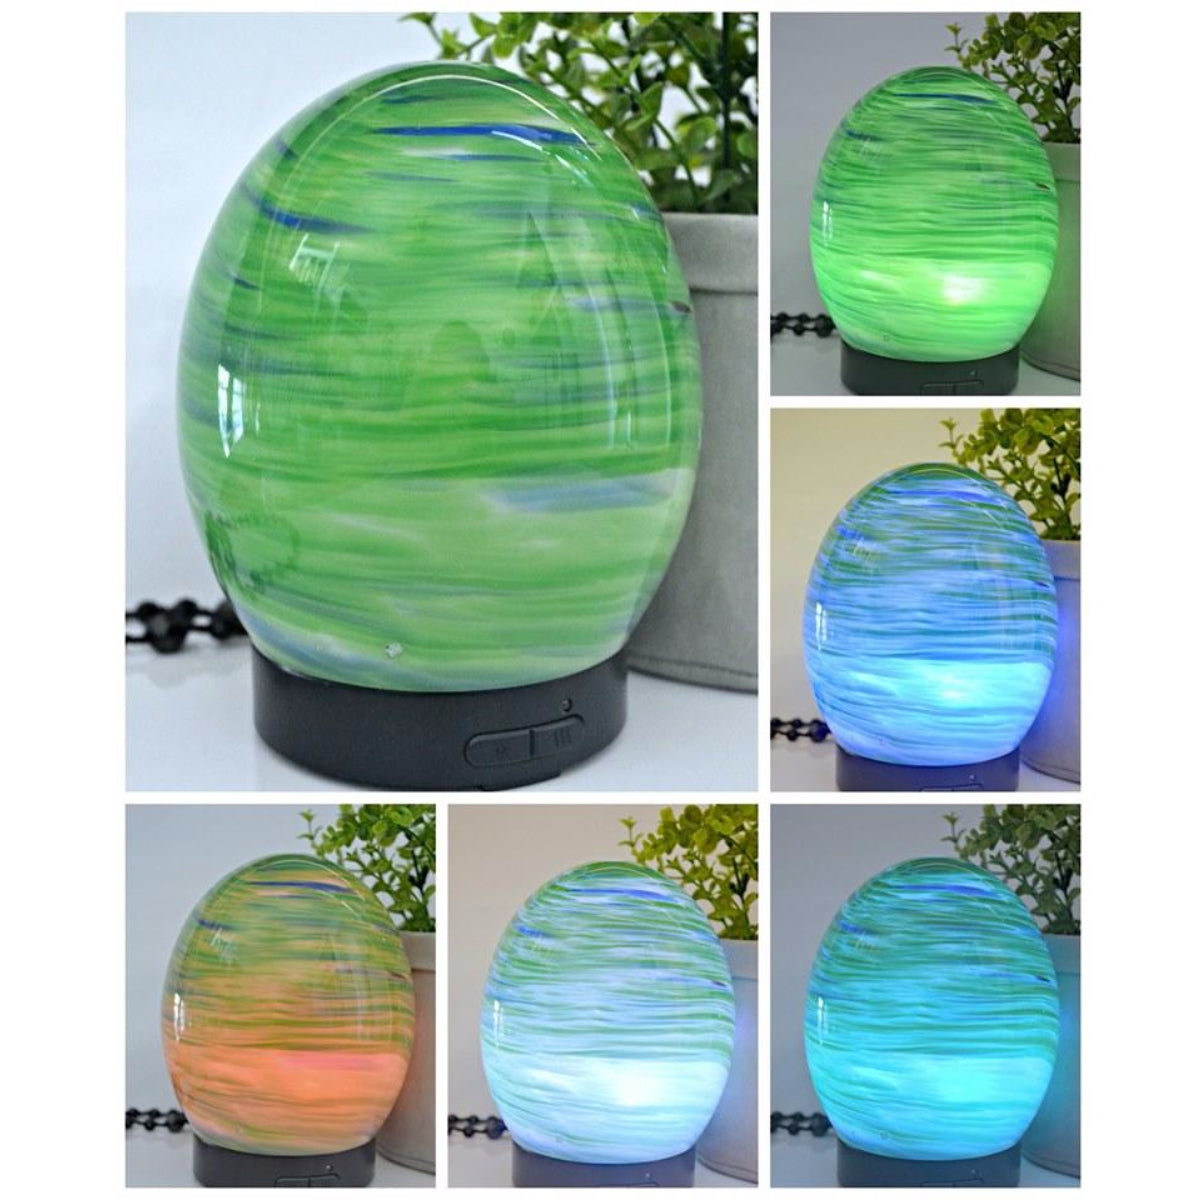 Glass Egg Ultrasonic Diffuser - Green